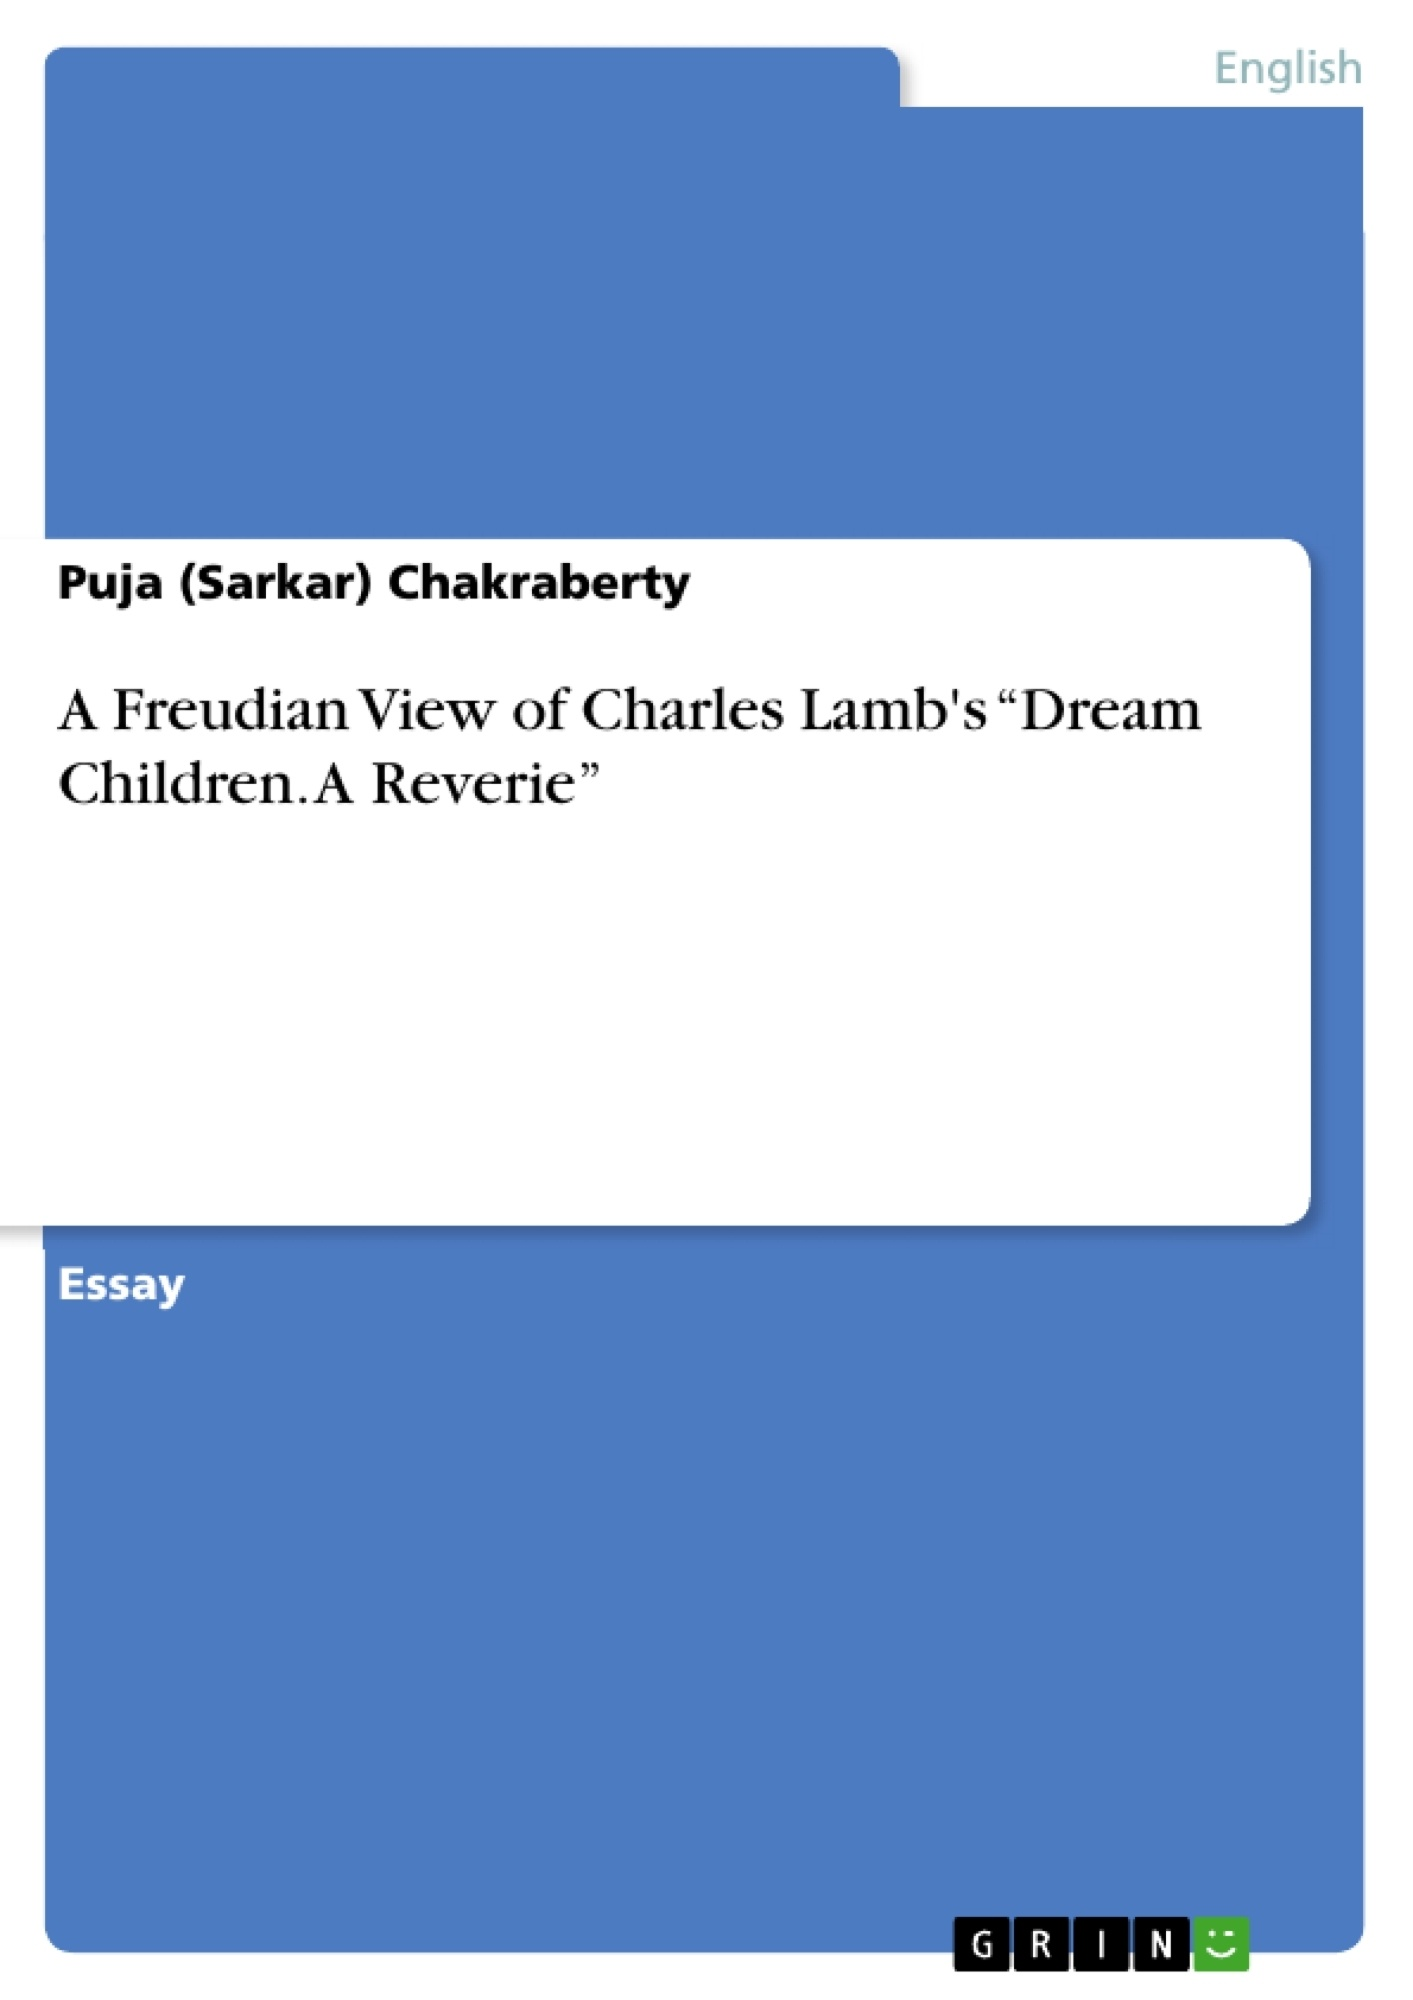 a freudian view of charles lamb s dream children a reverie a freudian view of charles lamb s dream children a reverie publish your master s thesis bachelor s thesis essay or term paper